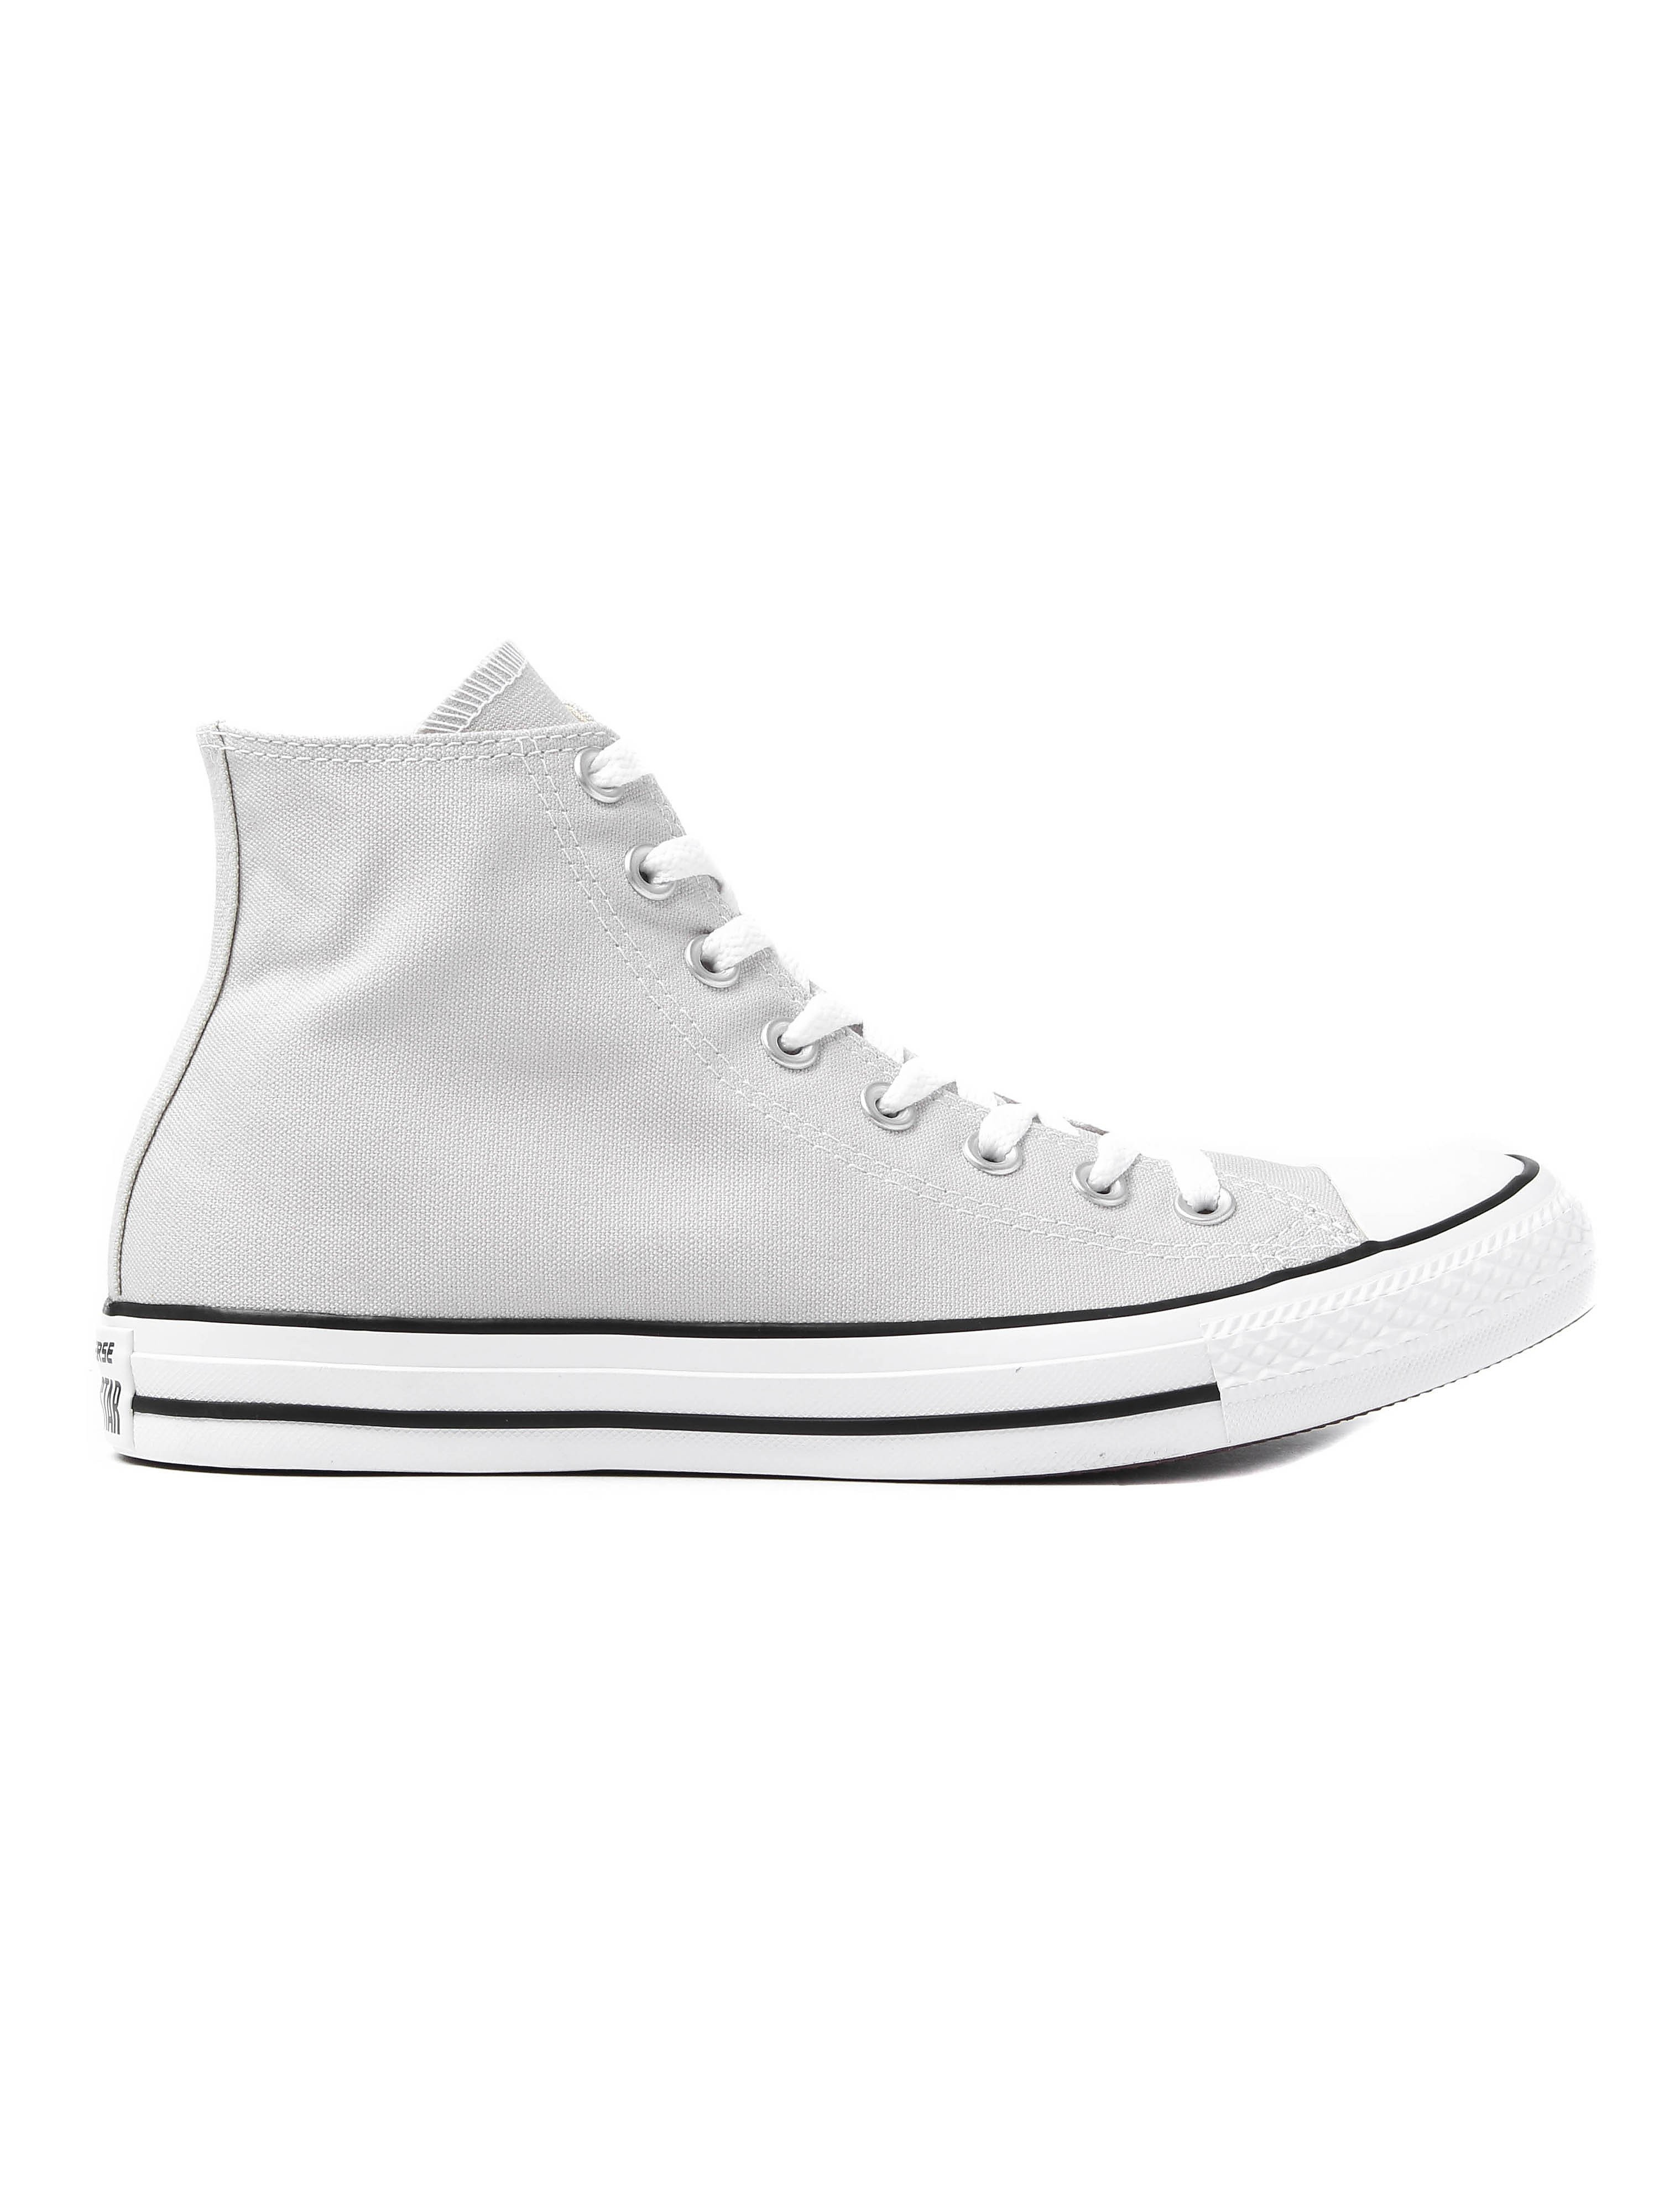 Converse Men's Chuck Taylor All Star Hi Trainers - Pale Putty